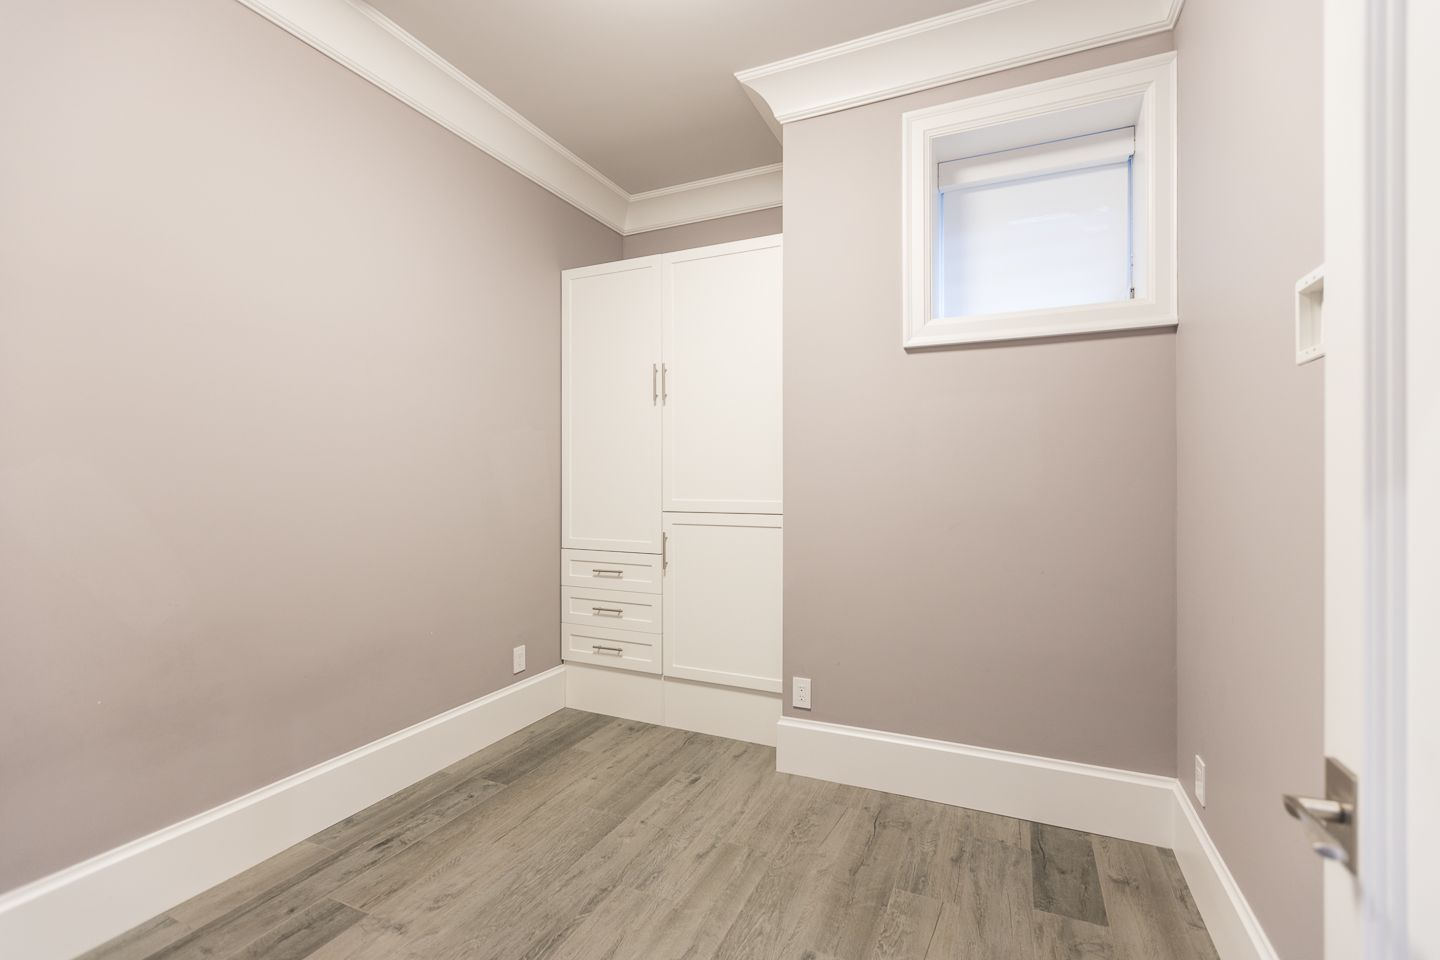 Photo 38: Photos: 1744 WEST 61ST AVE in VANCOUVER: South Granville House for sale (Vancouver West)  : MLS®# R2546980